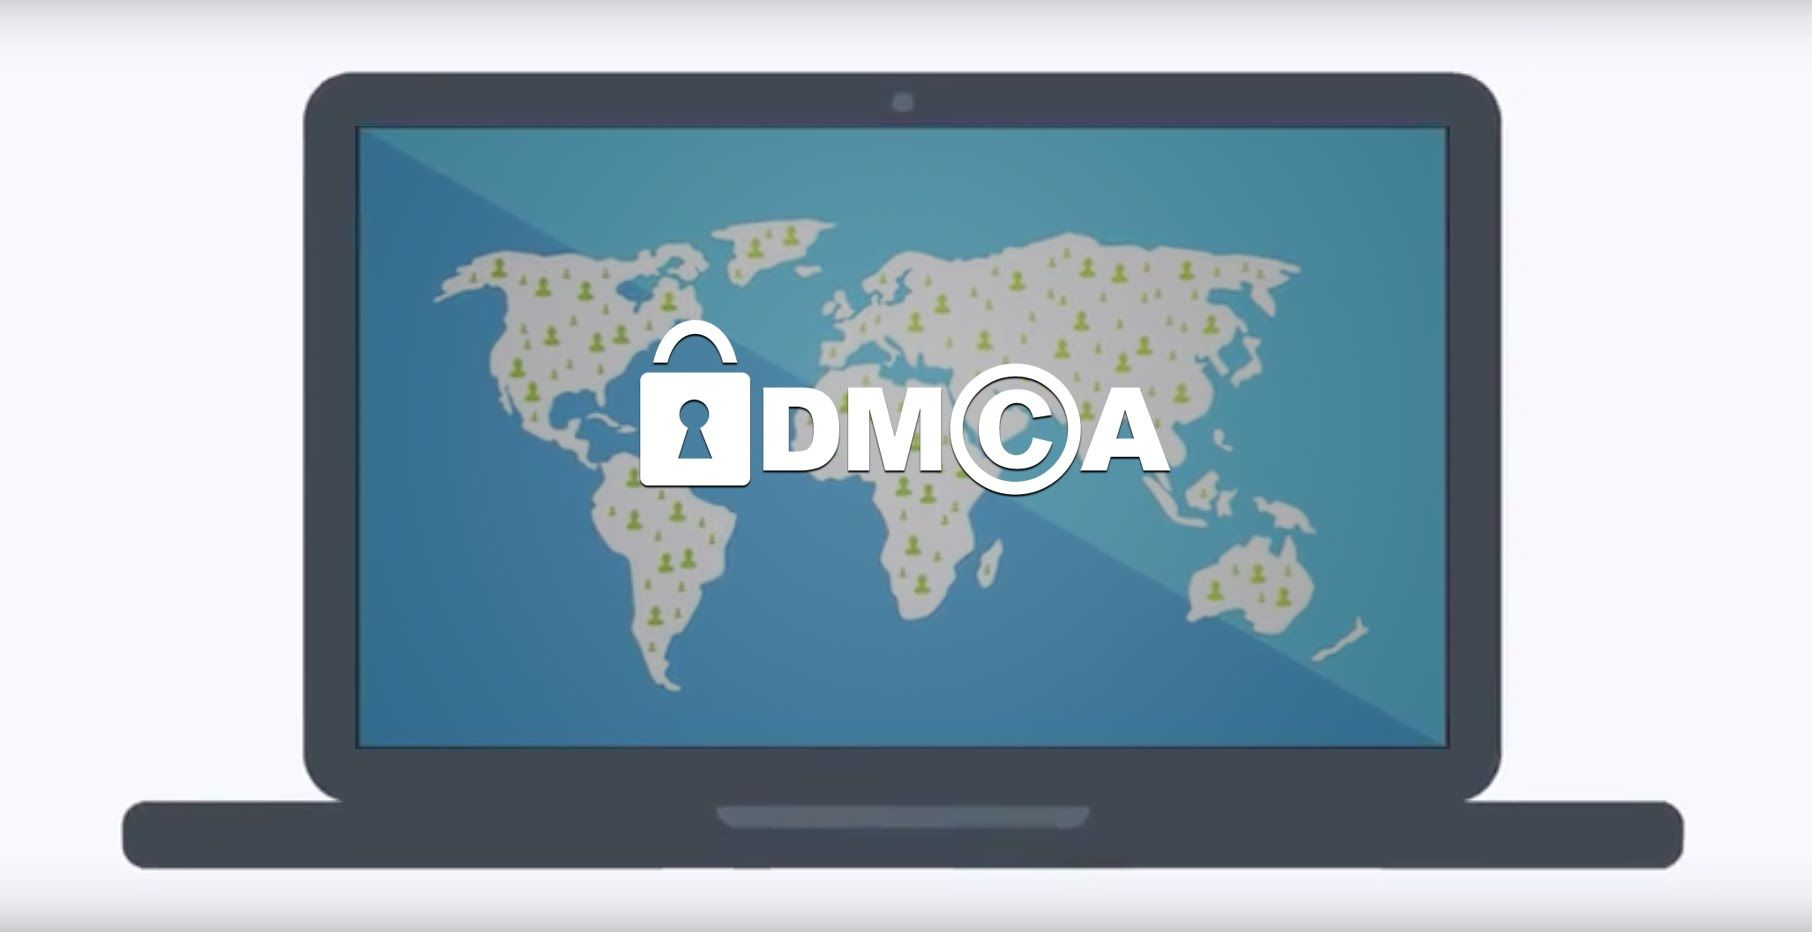 DMCA.com introduces Protection Pro service  https://www.youtube.com/watch?v=zS6ClqKQHWw  #dmca #takedown #dmcabadge